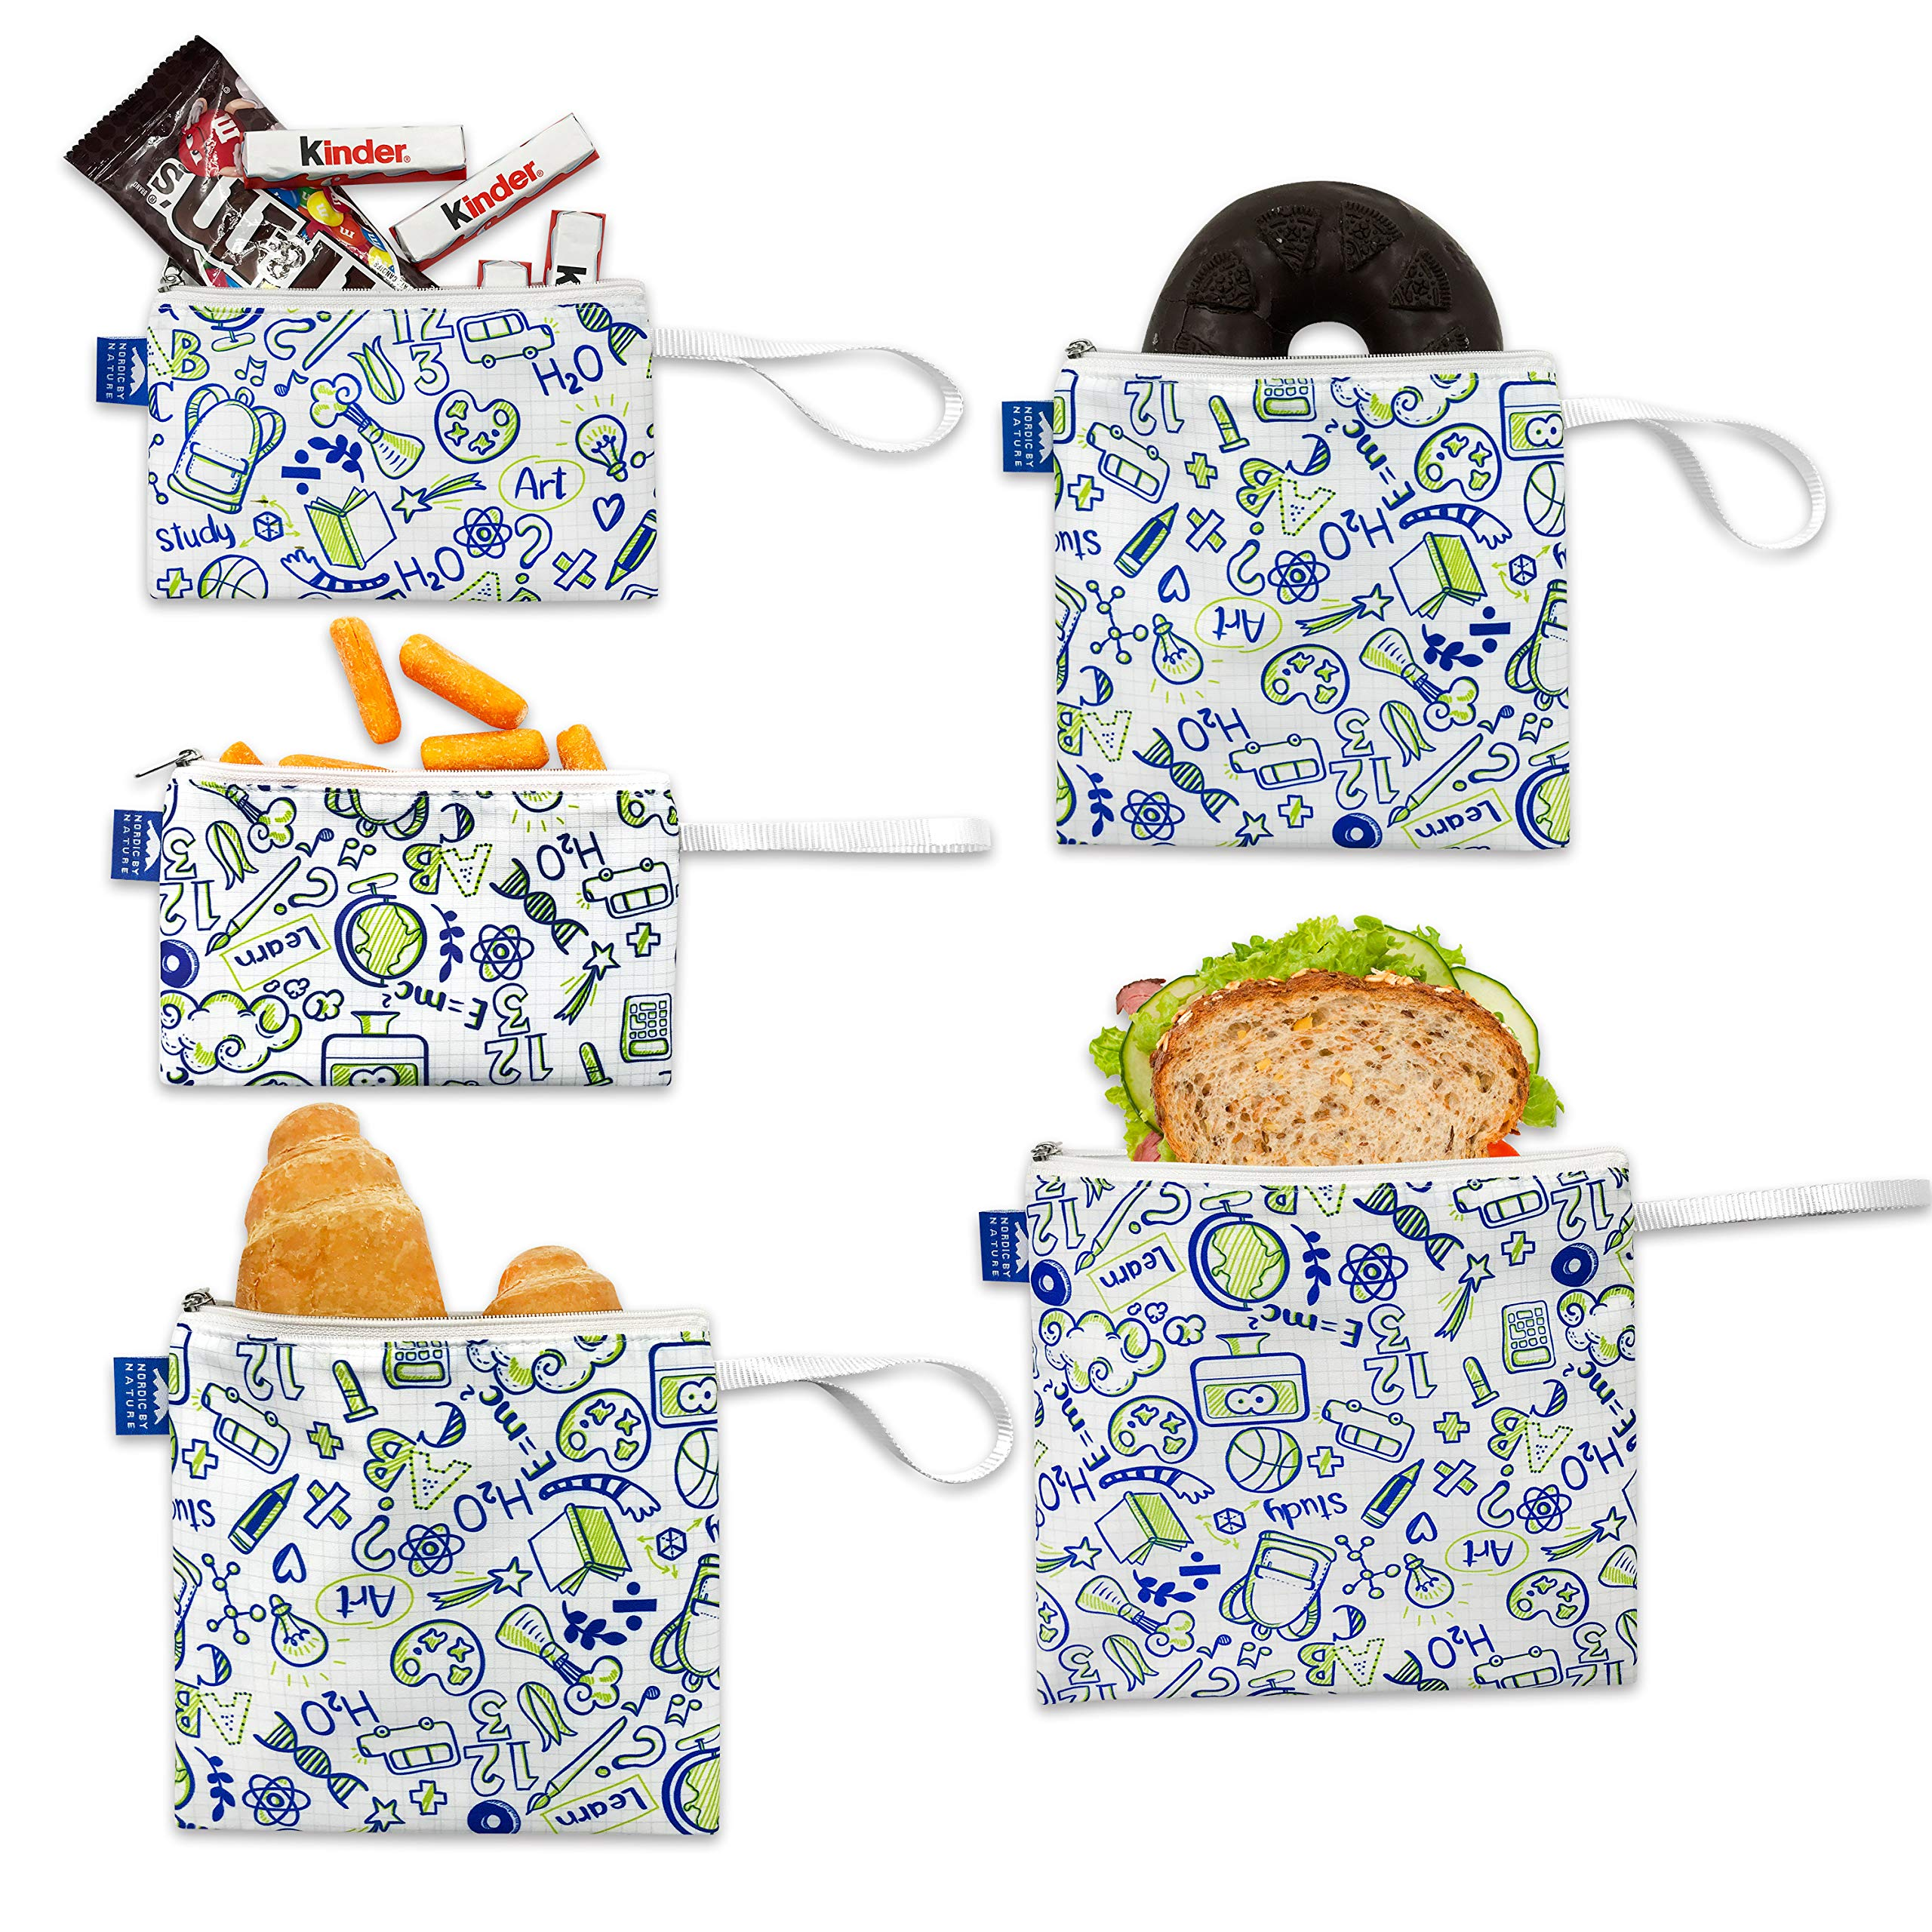 Nordic By Nature Reusable Sandwich Bag Snack Bags - Value Pack of 5 Dual Layer Lunch Baggies - Dishwasher Safe - Eco Friendly Cloth Wraps - Easy Open Zipper For Kids (Back to School)